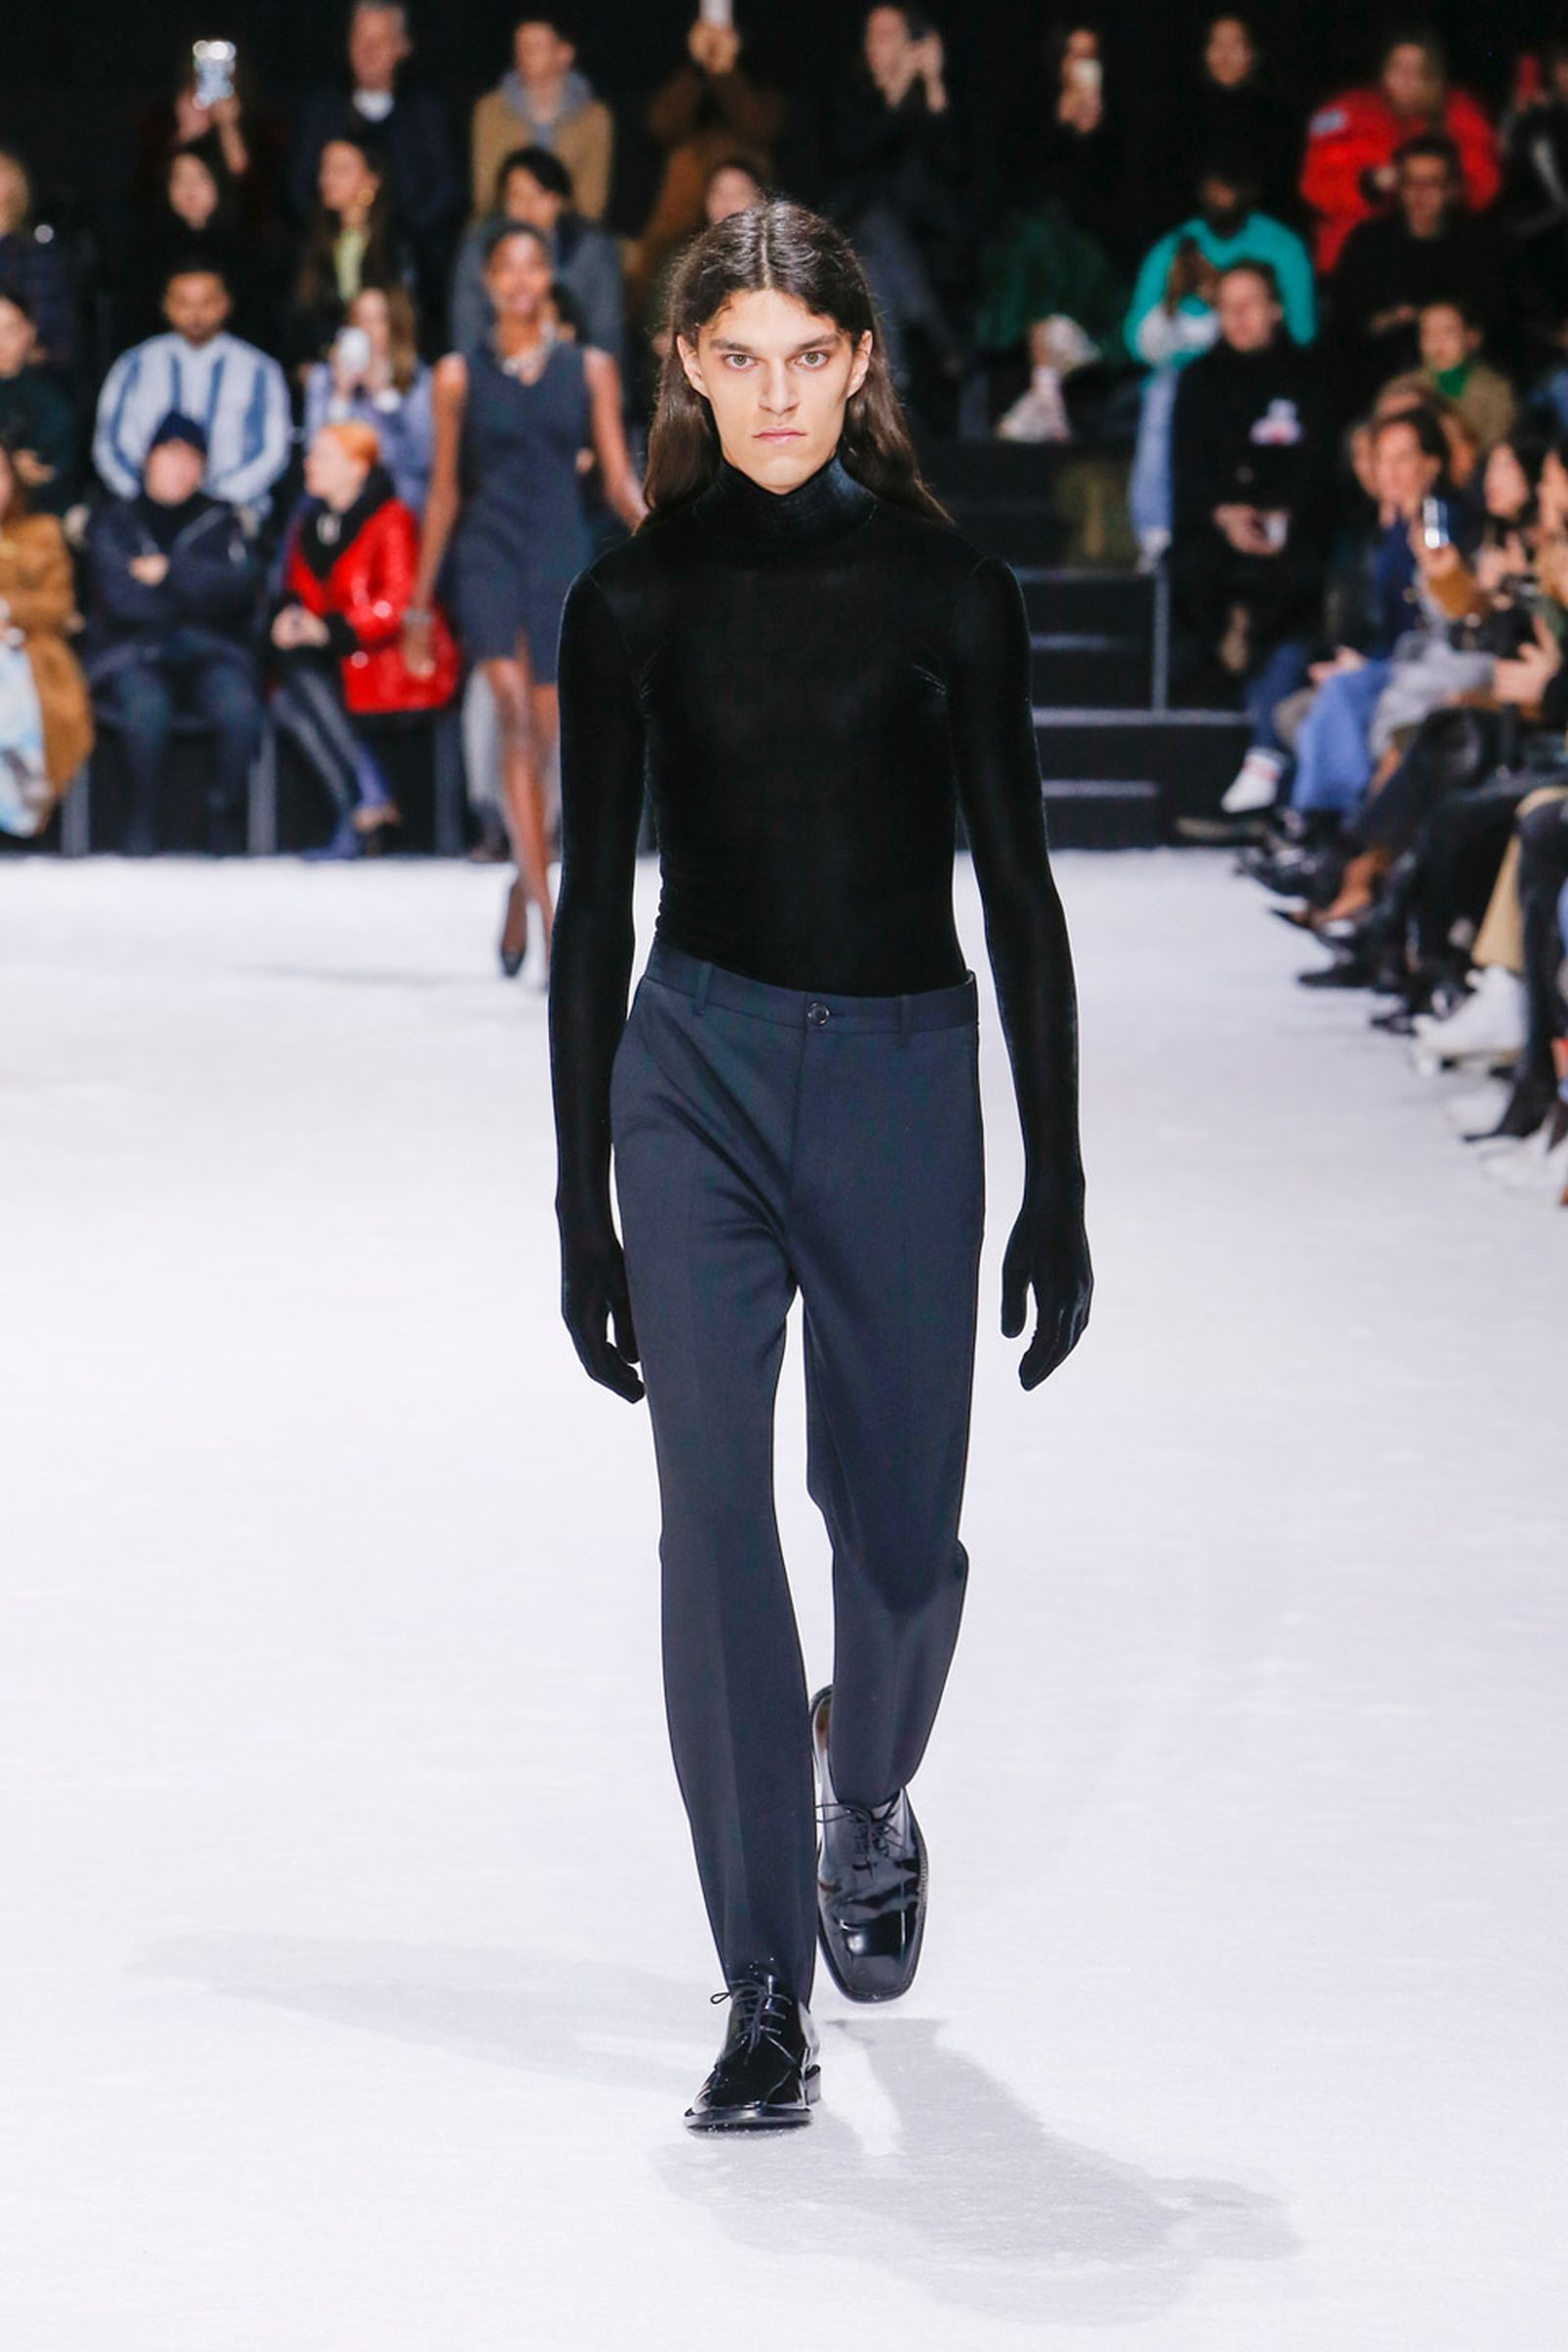 balenciaga fw18 Fall/WInter 2018 paris fashion week runway